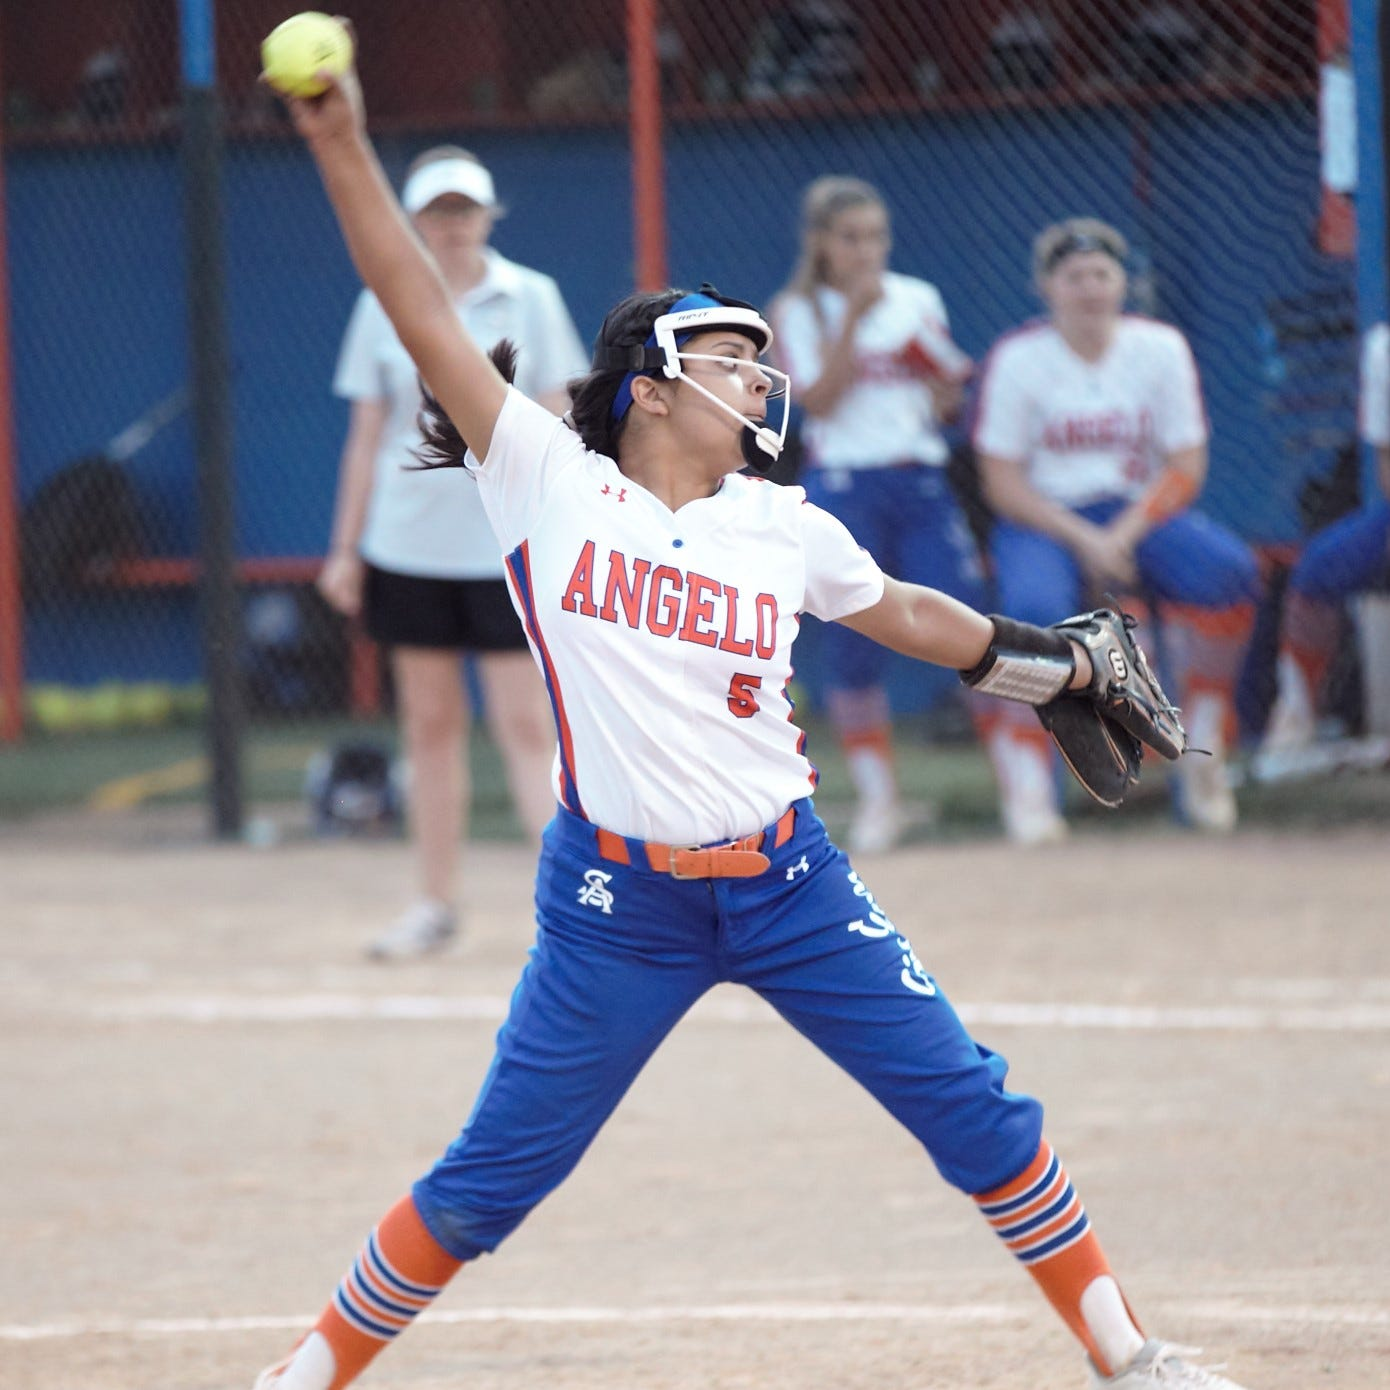 SOFTBALL PLAYOFFS: Miles beats Junction in bidistrict; Central drops play-in game